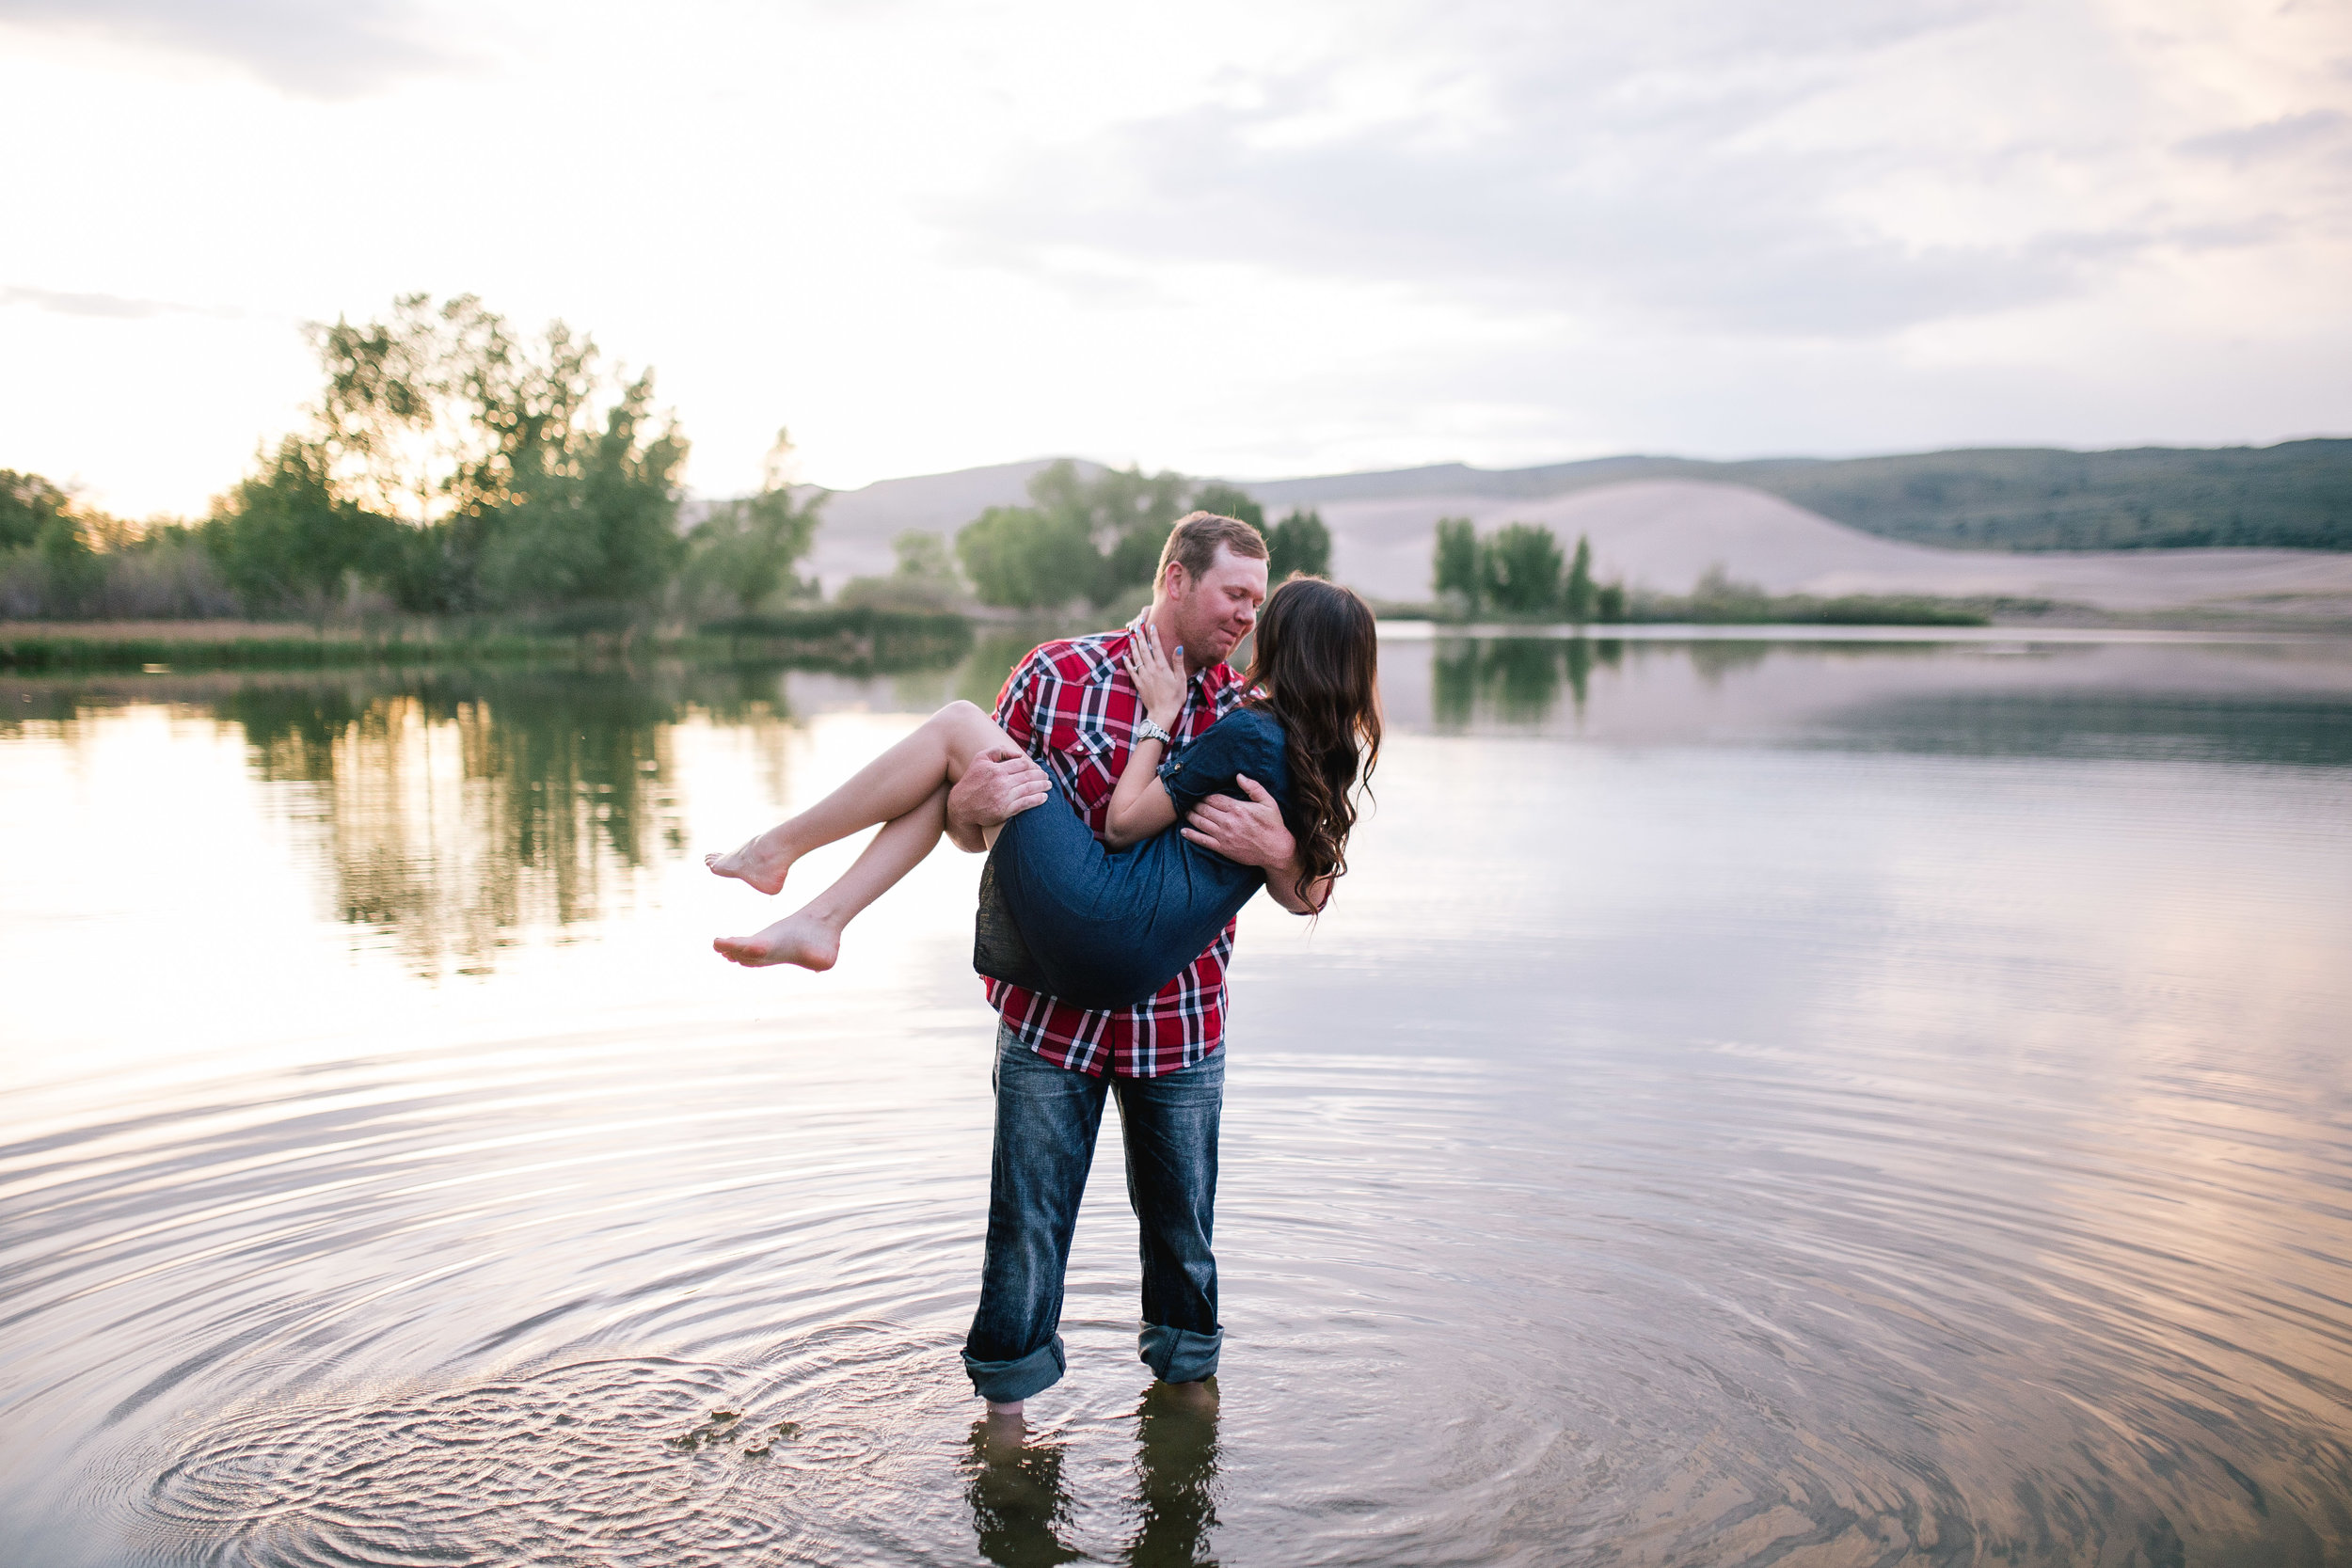 Rexburg+Idaho+Engagement+Photography+Jackson+Hole+Engagement+Photography+by+Look+For+The+Light+Photo+Video (1).jpeg